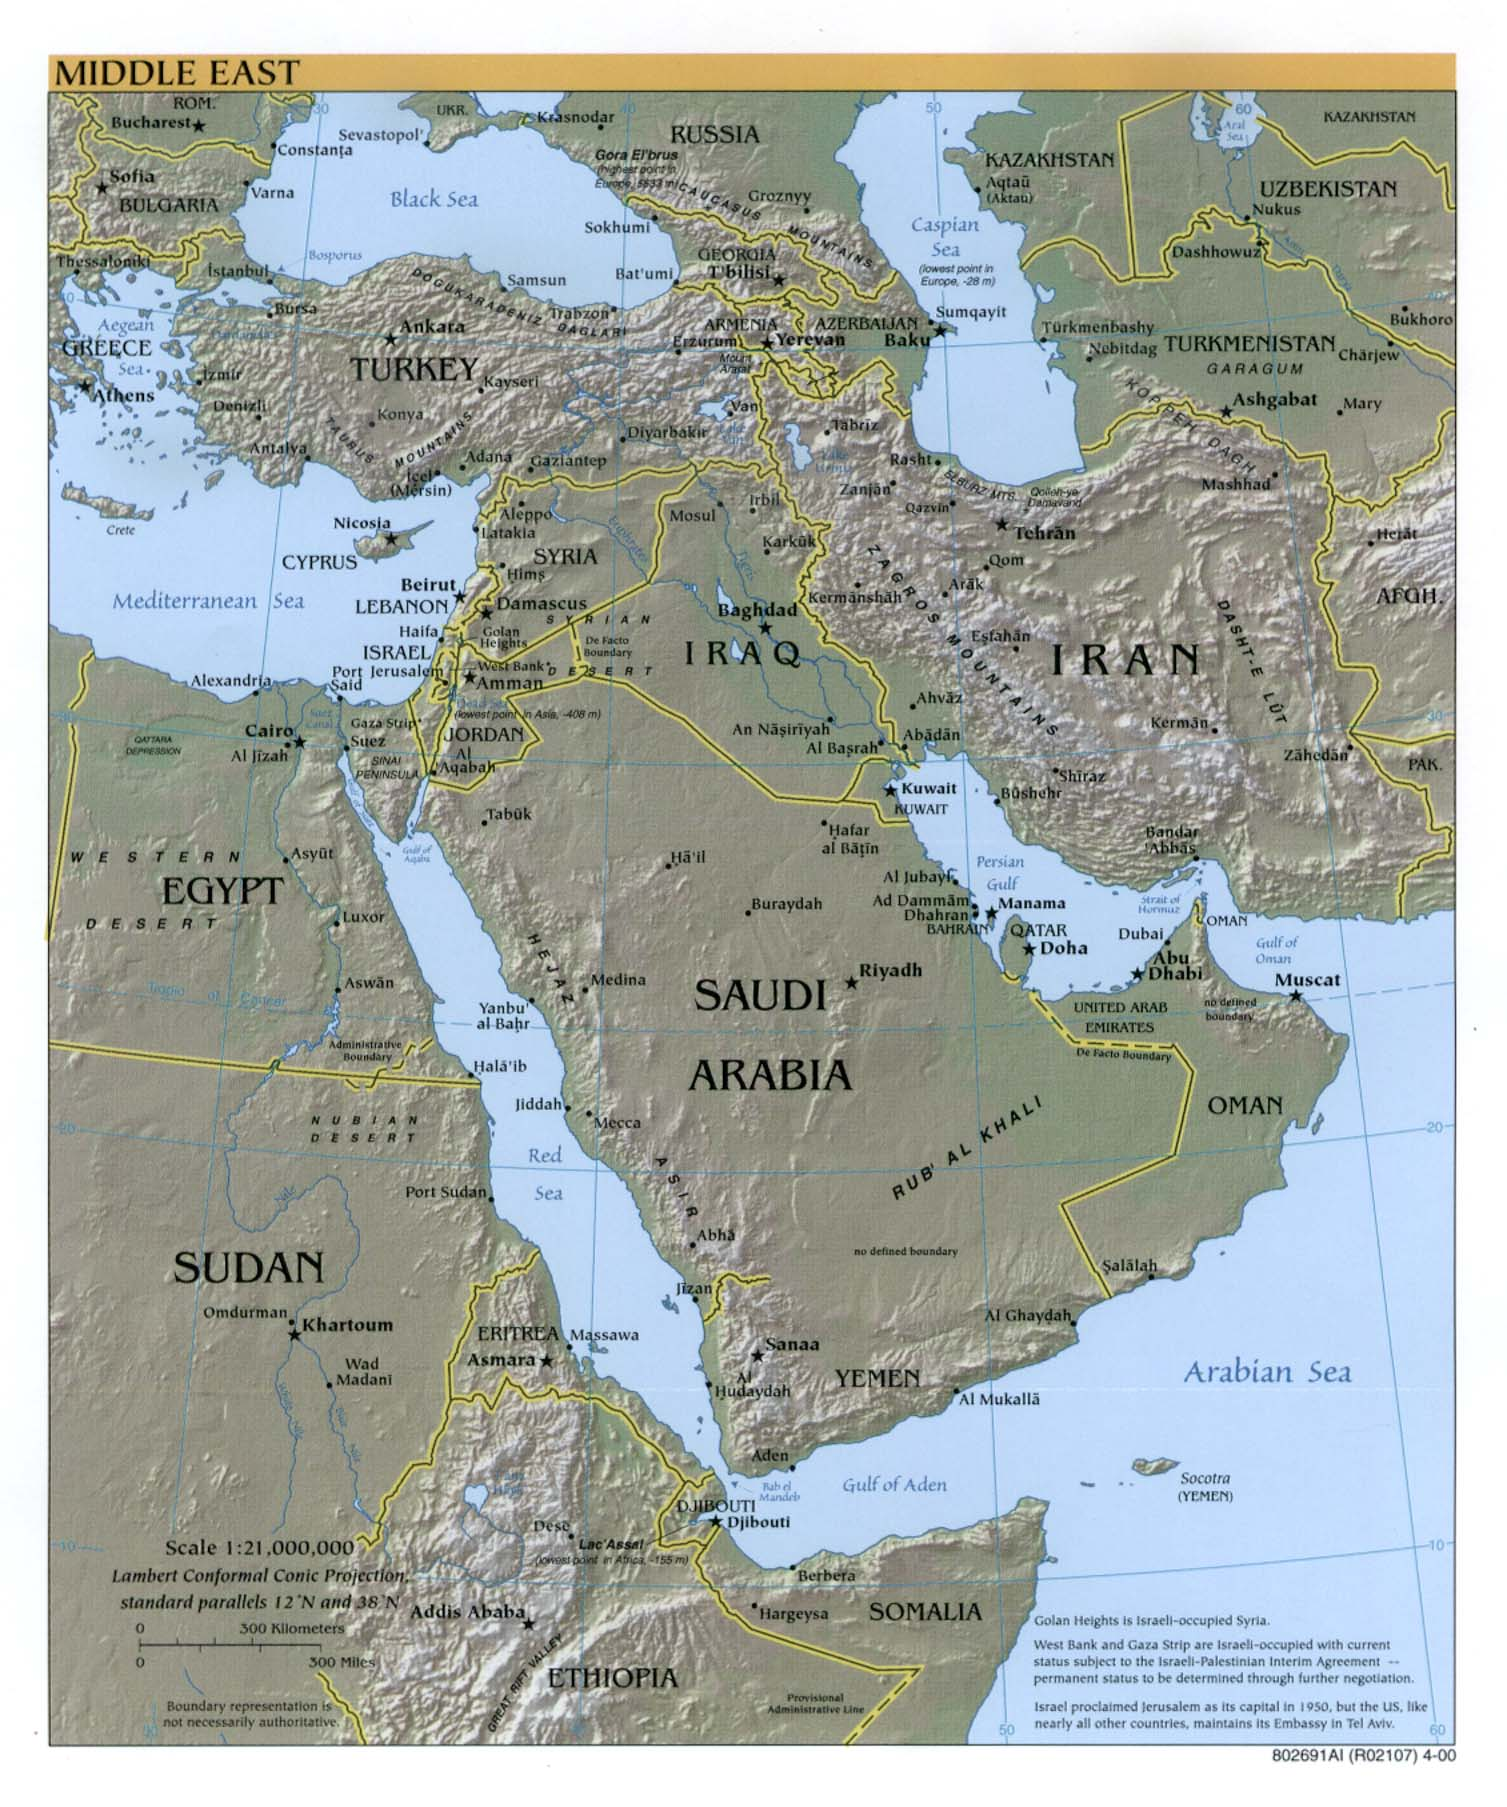 Middle East Shaded Relief Map 2000